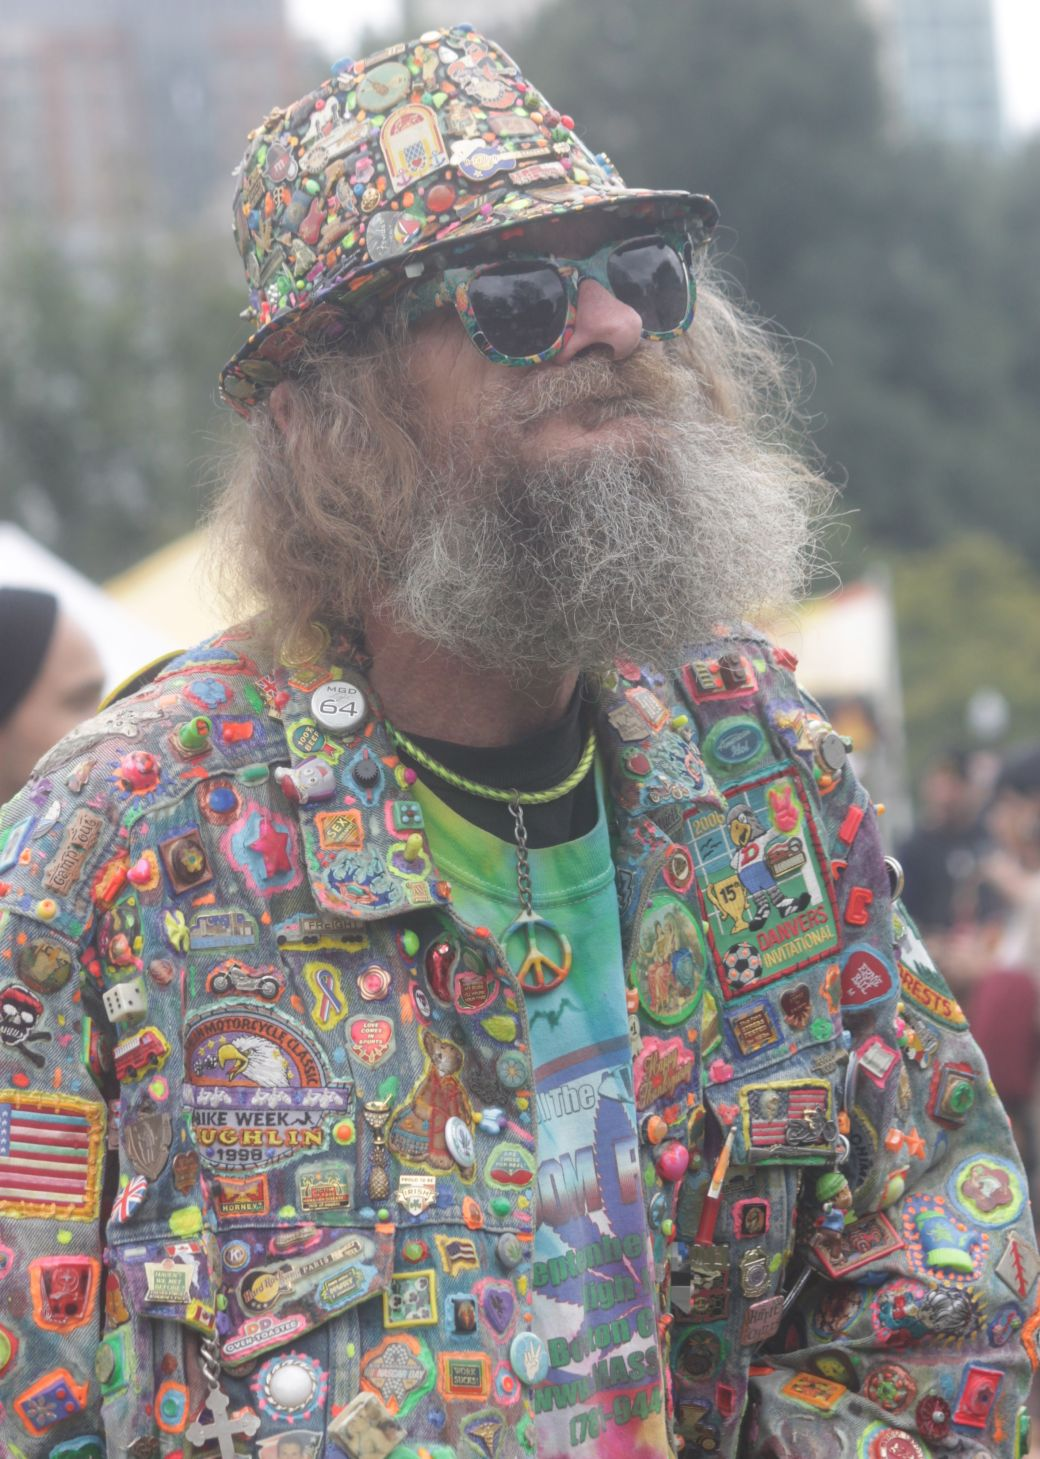 boston hemp fest 2013 man with patches face beard